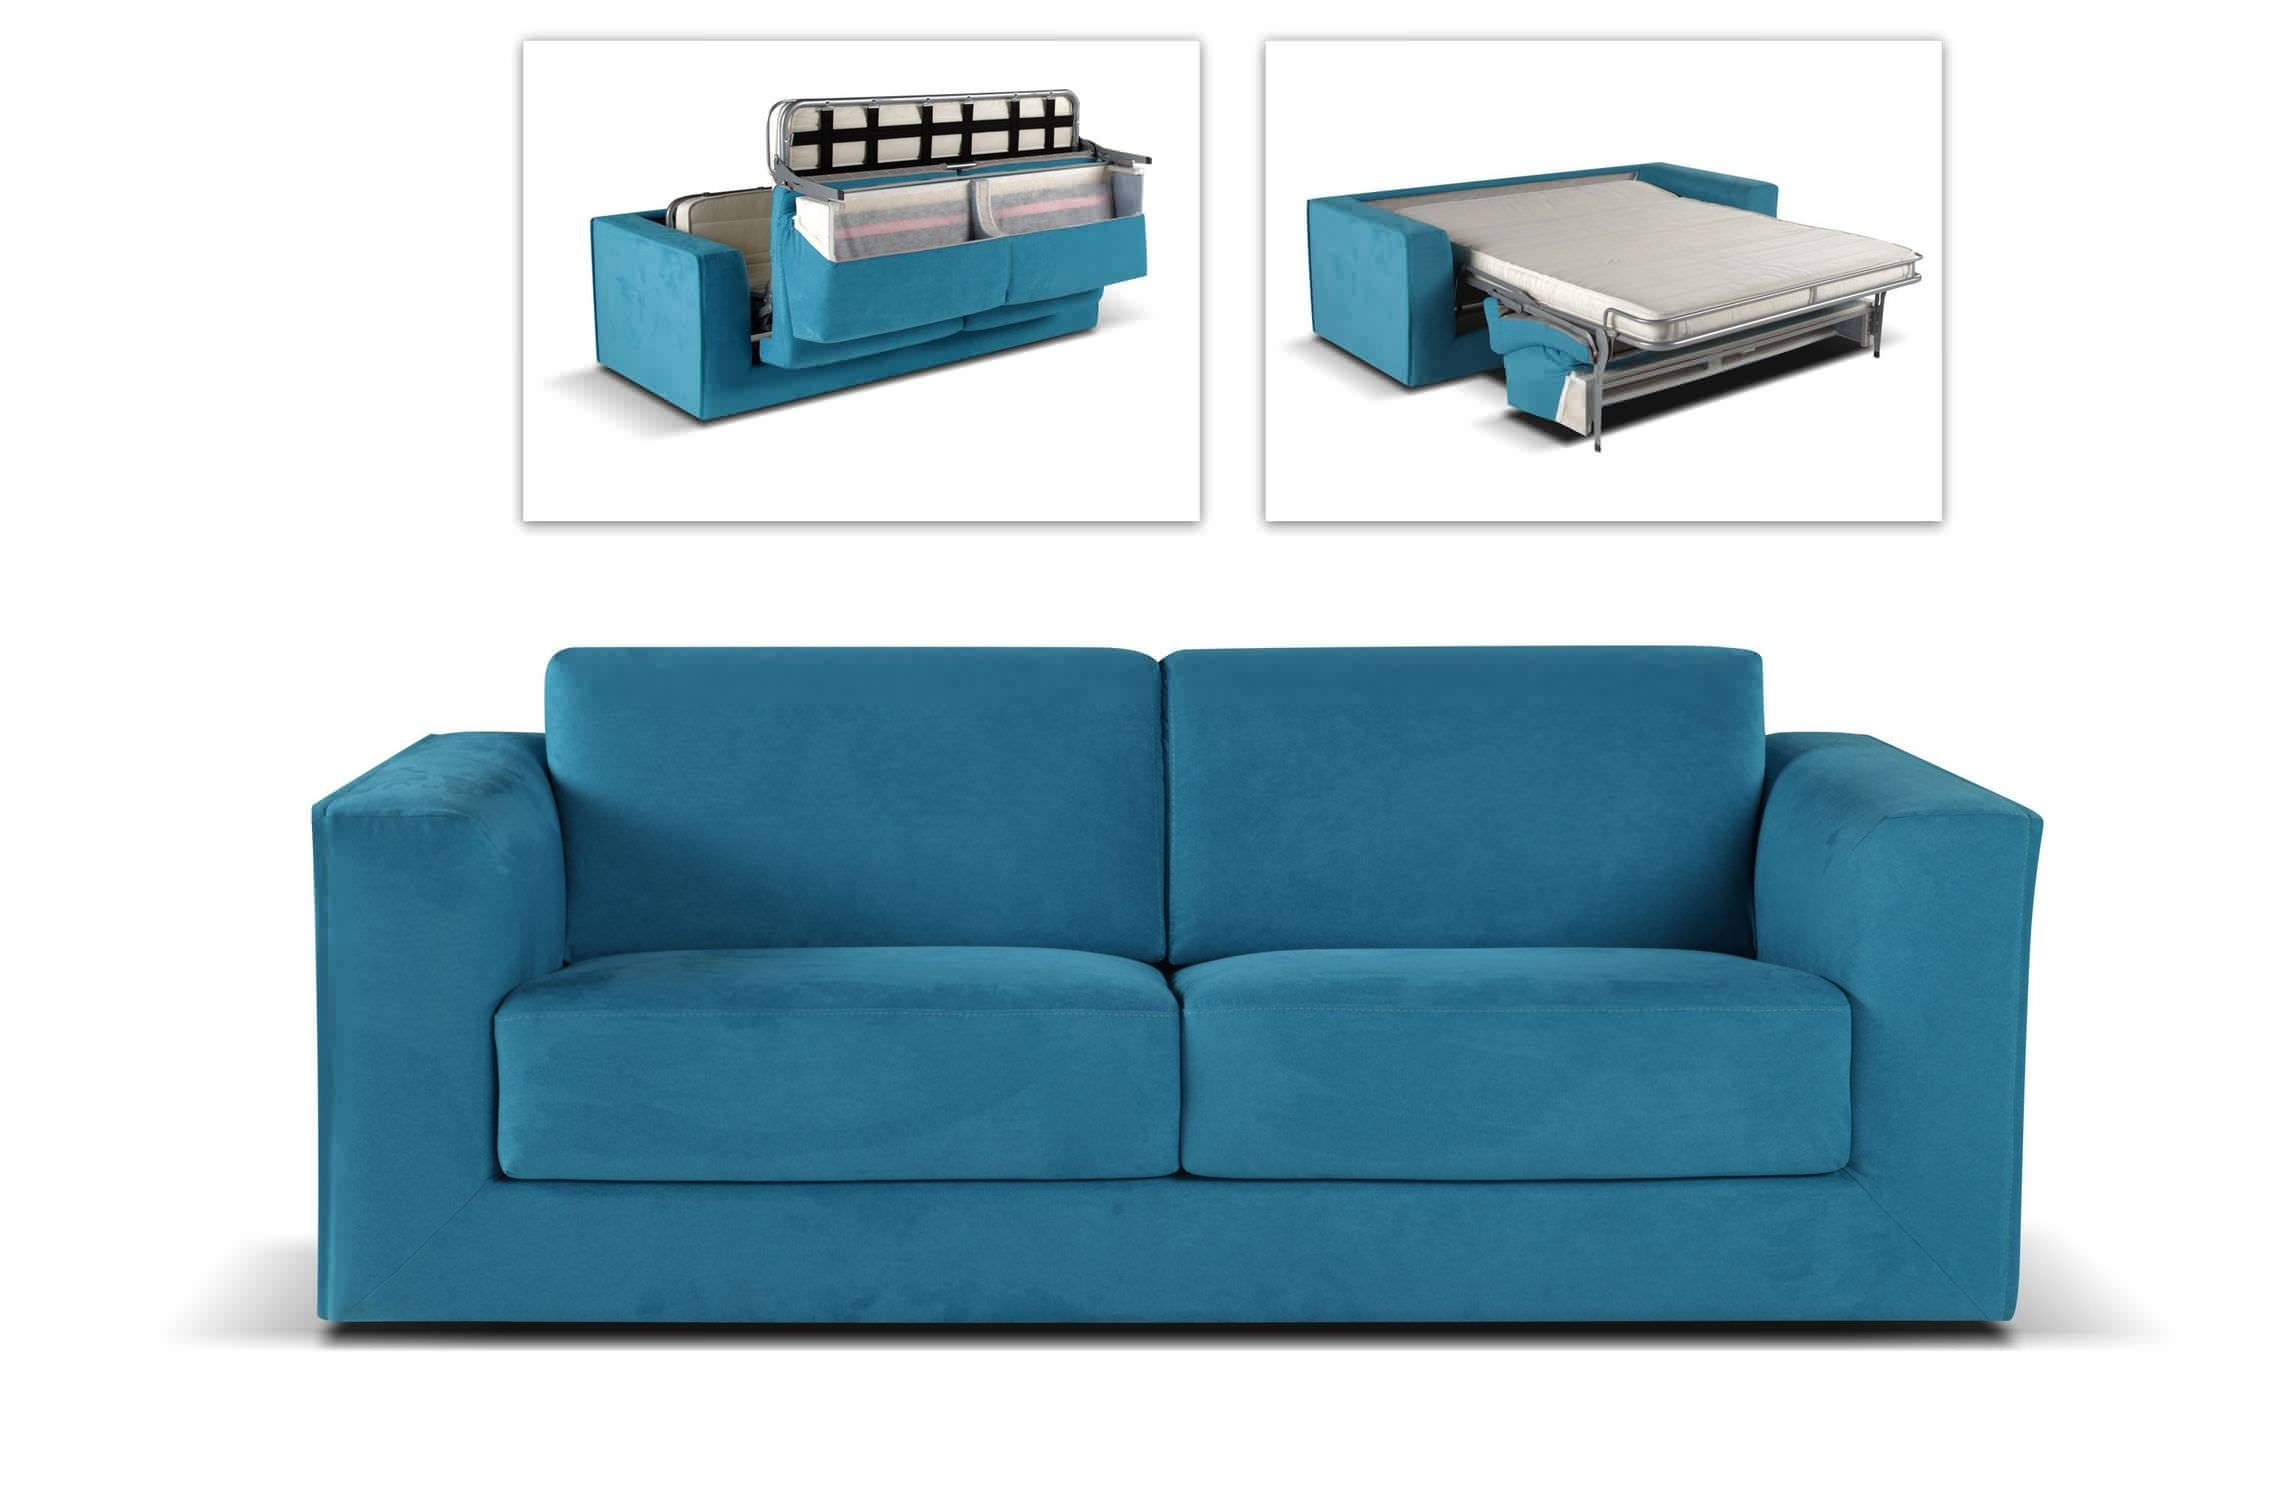 Ikea single sofa for Ikea sofa set